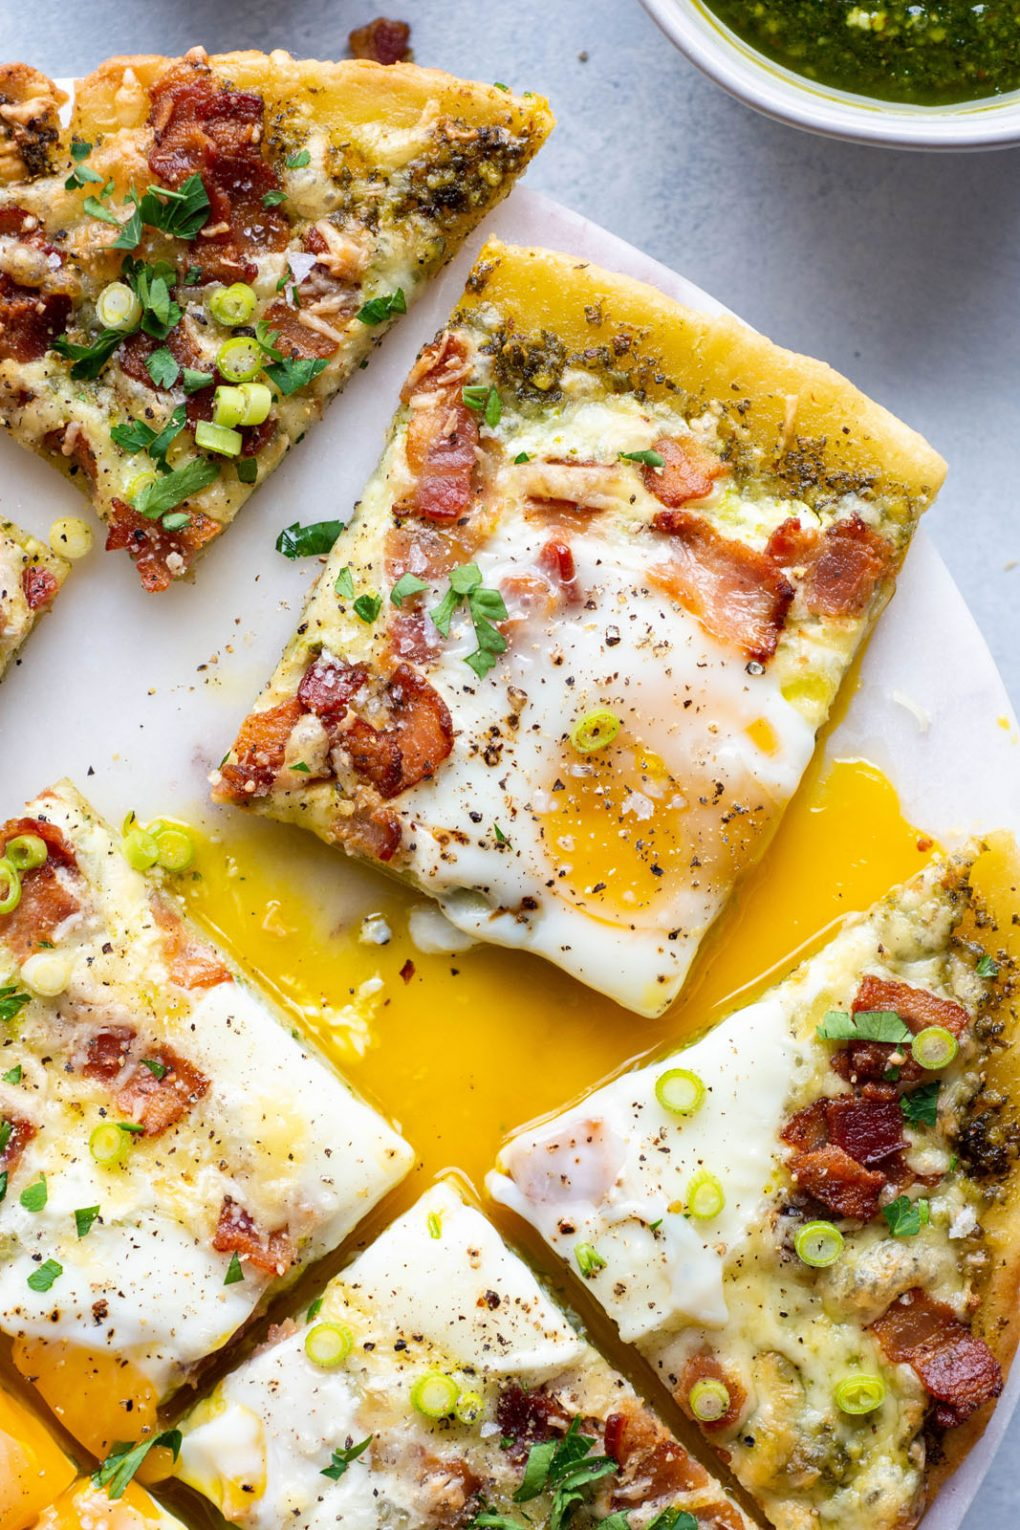 A close up overhead shot of a single square shaped piece of breakfast pizza pulled away from the rest of the pizza surrounded by runny egg yolk and topped with fresh herbs and green onion. On a light colored background.